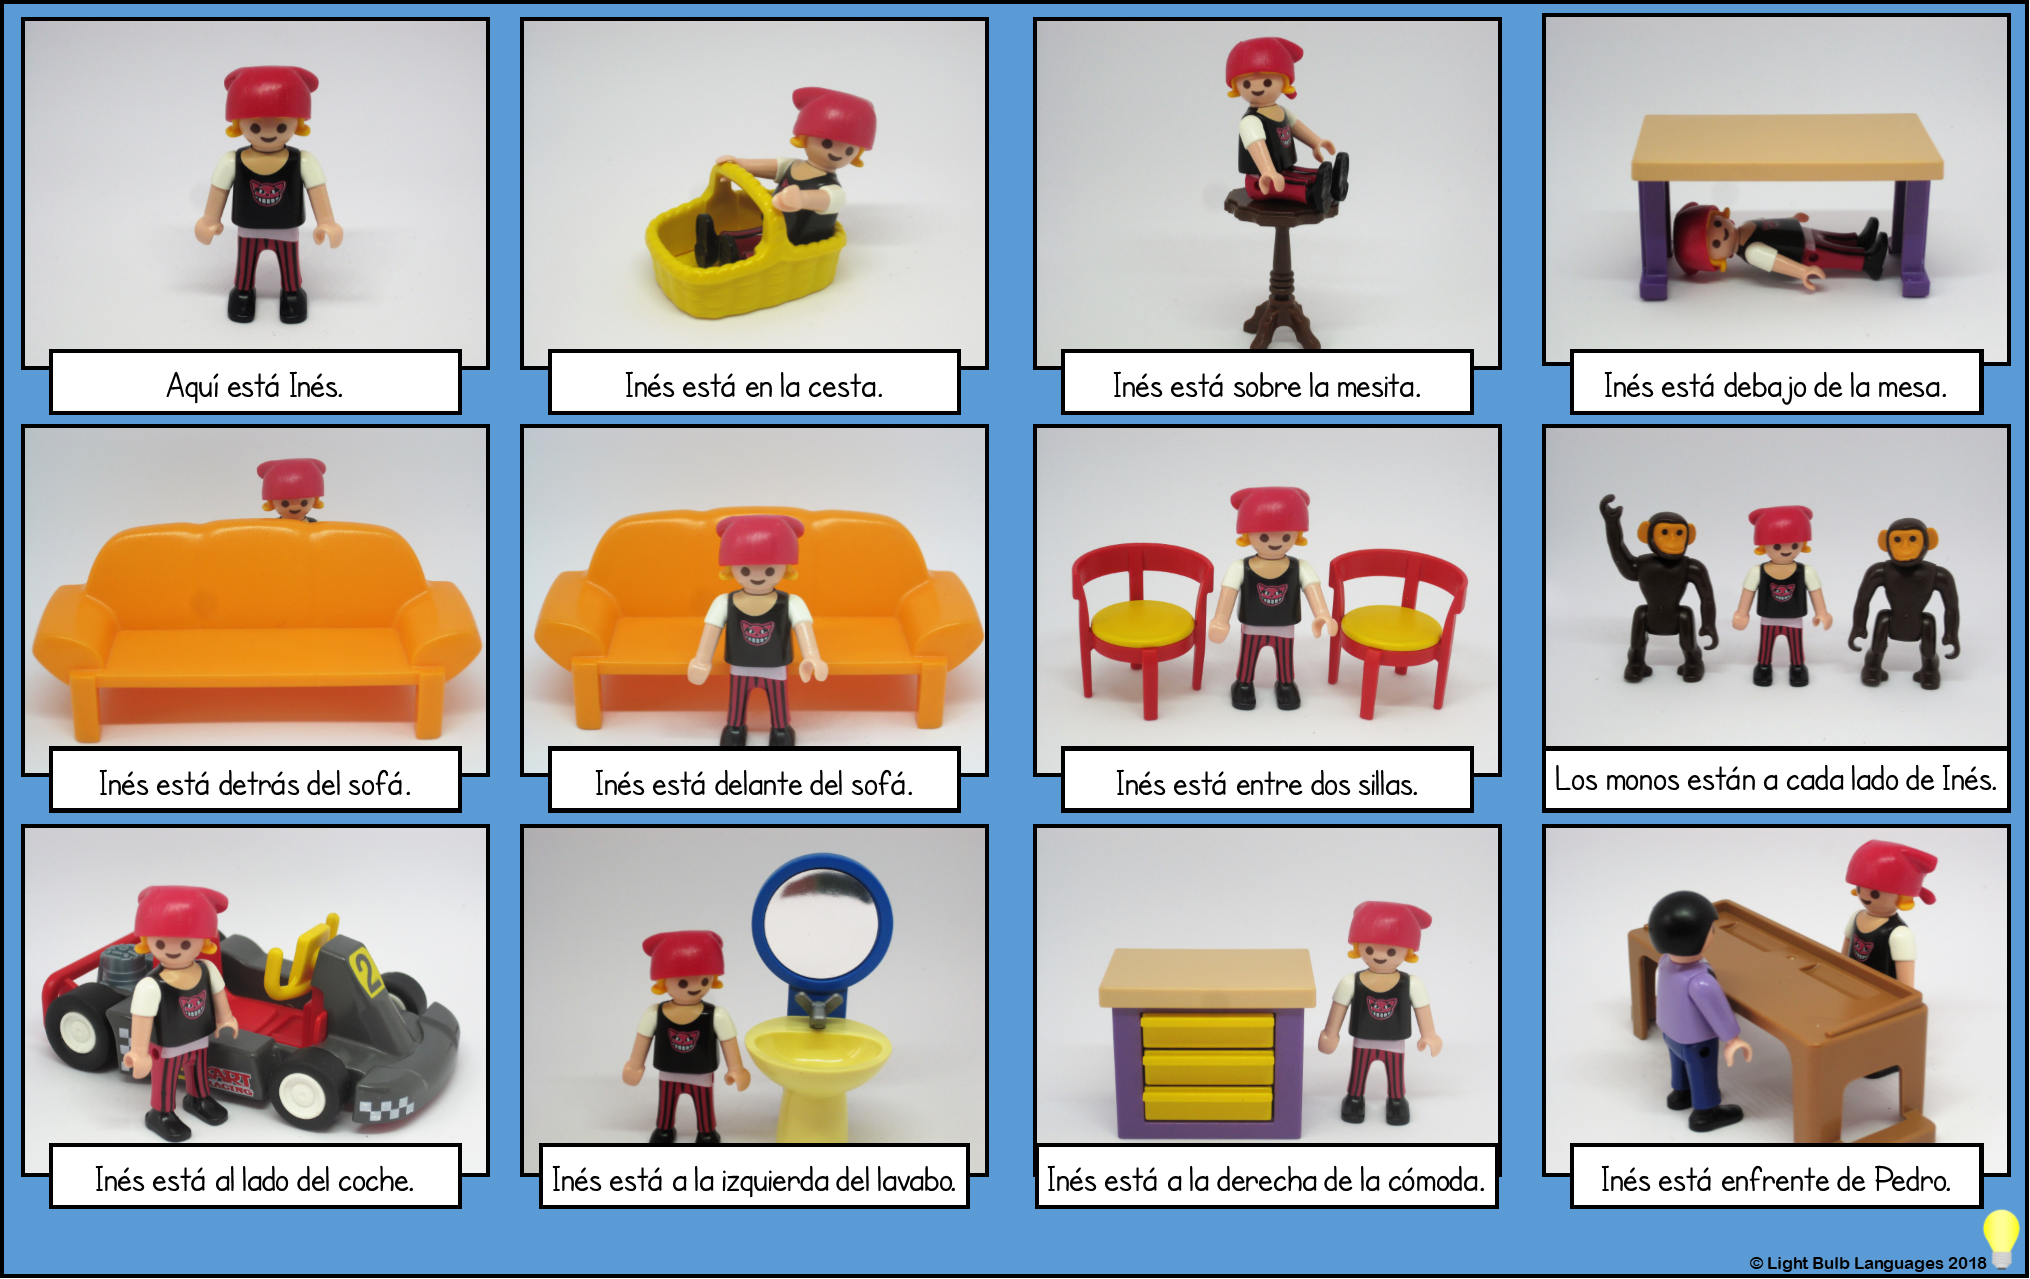 Spanish KS3 Grammar Resources